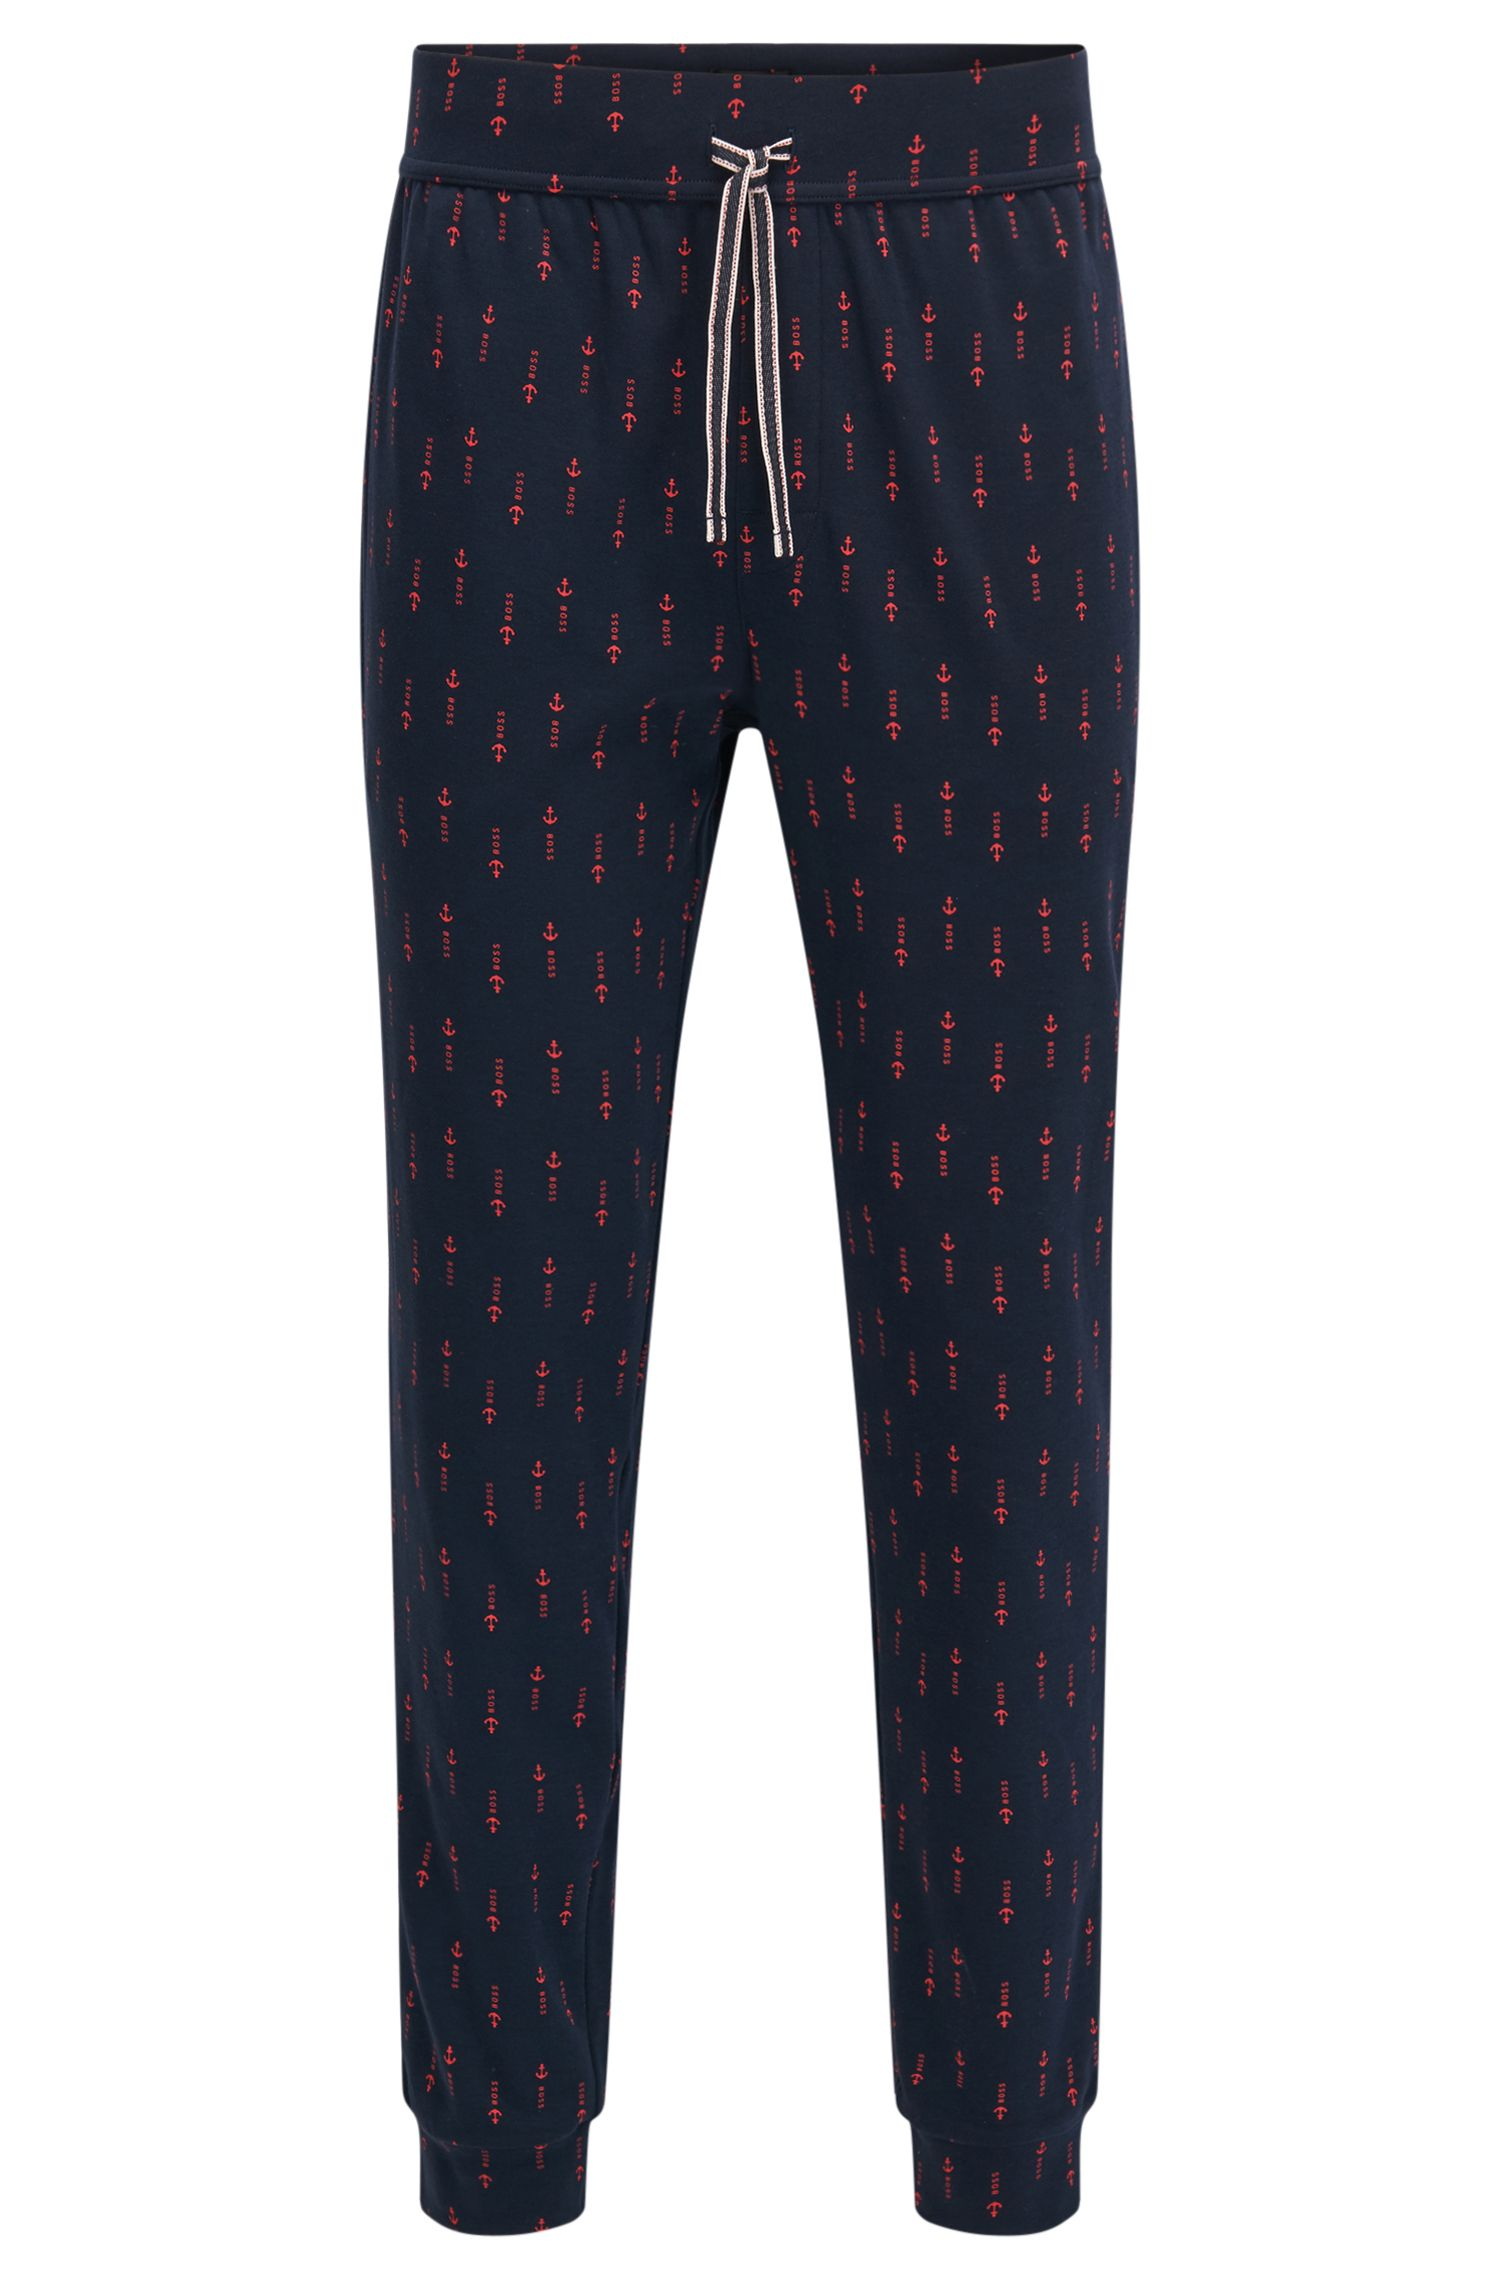 Cuffed pyjama bottoms in printed cotton